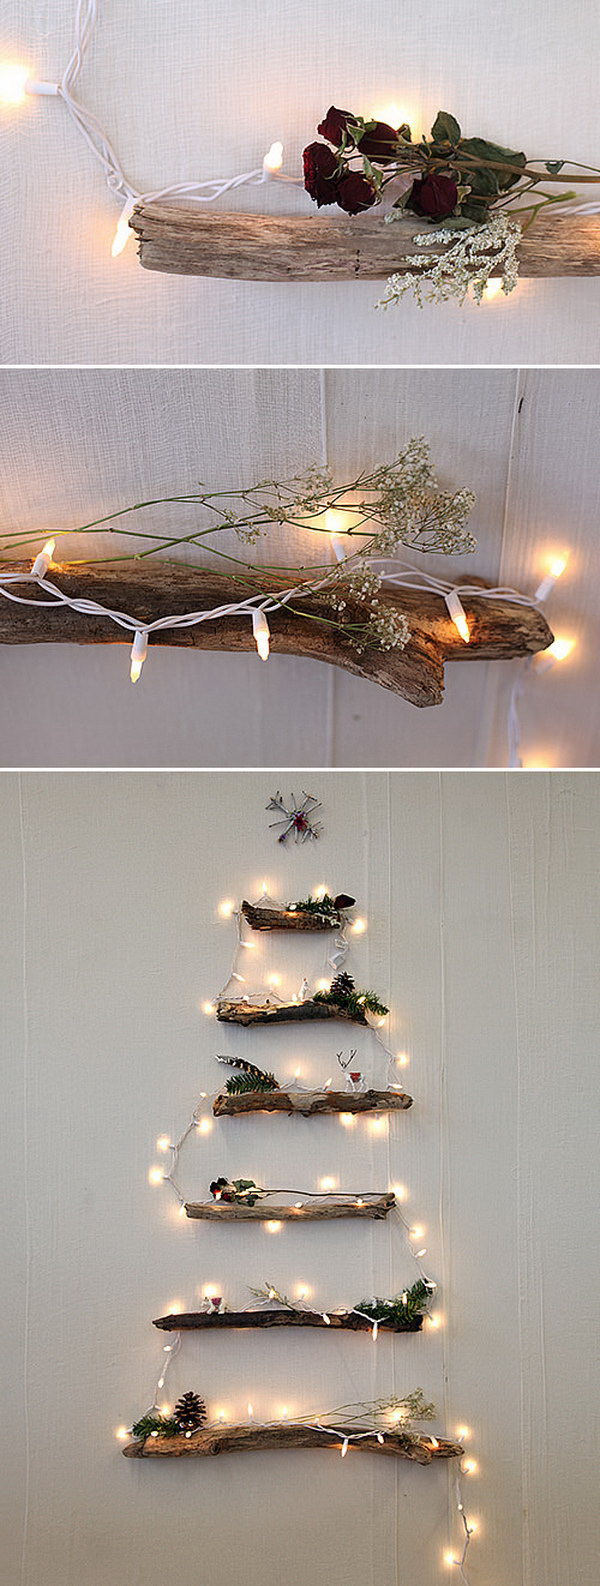 40 Cool DIY Rustic Christmas Decoration Ideas amp Tutorials